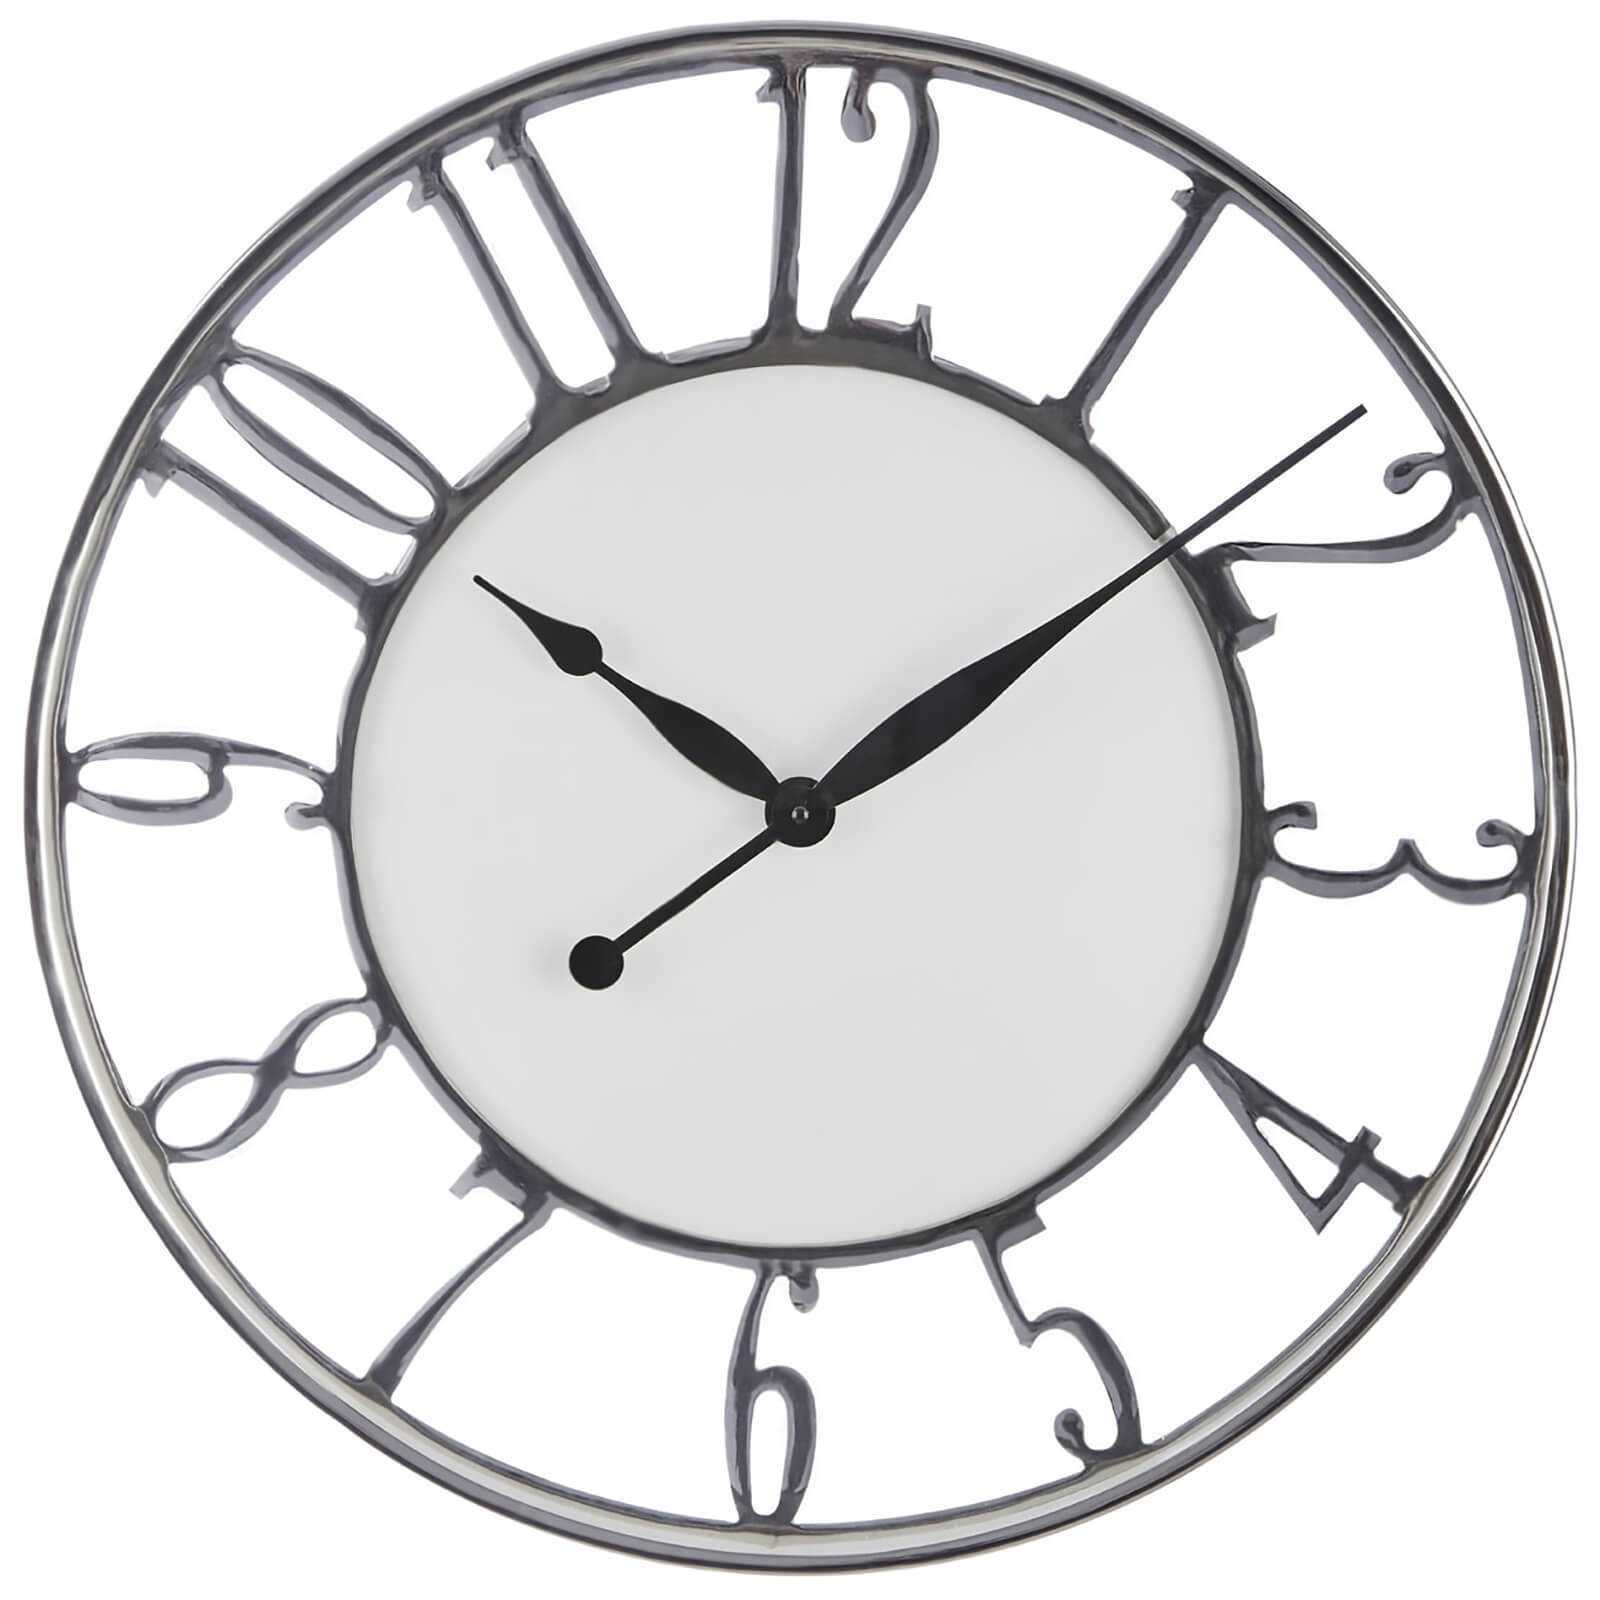 Fifty Five South Hampstead Wall Clock - Silver